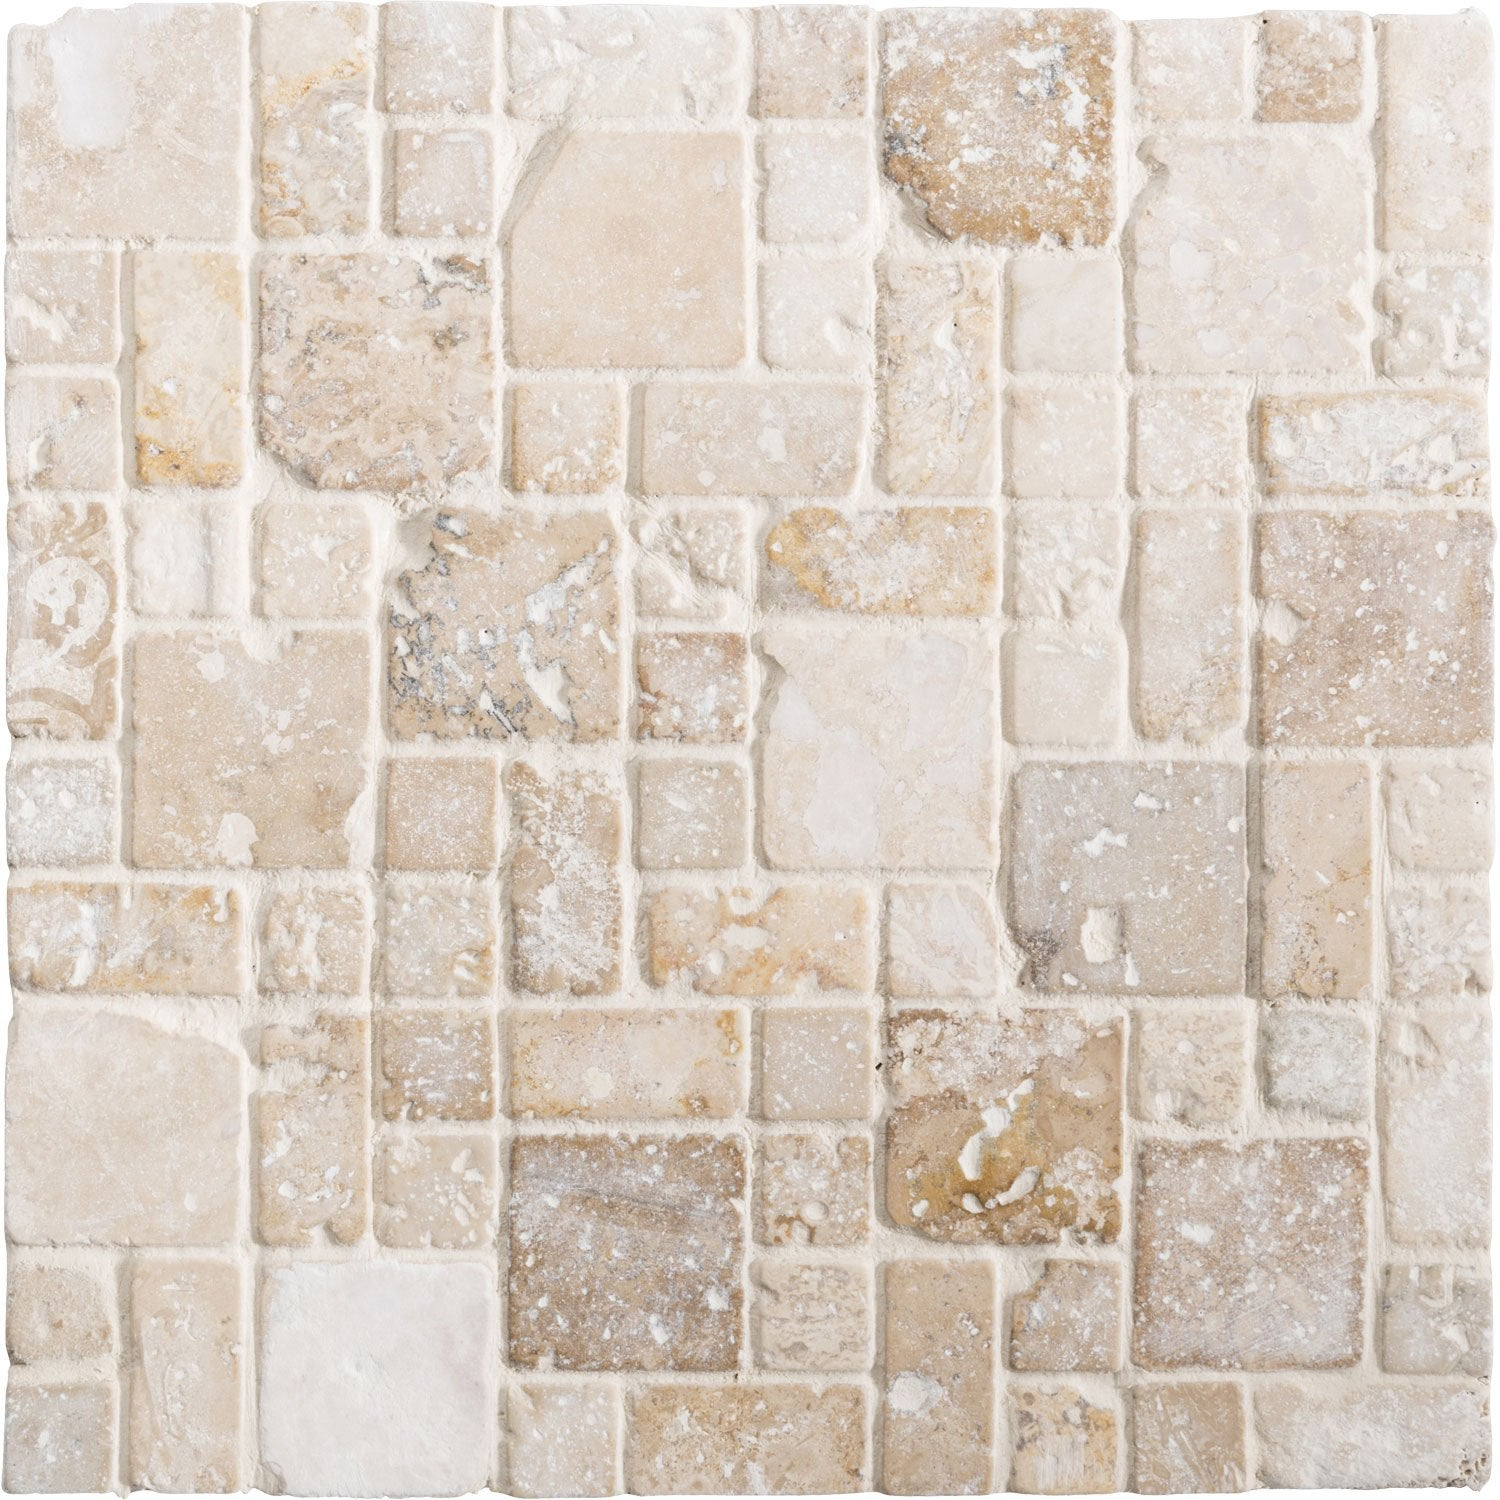 Mosaque leroy merlin great meuble en mosaique leroy for Carrelage mosaique leroy merlin